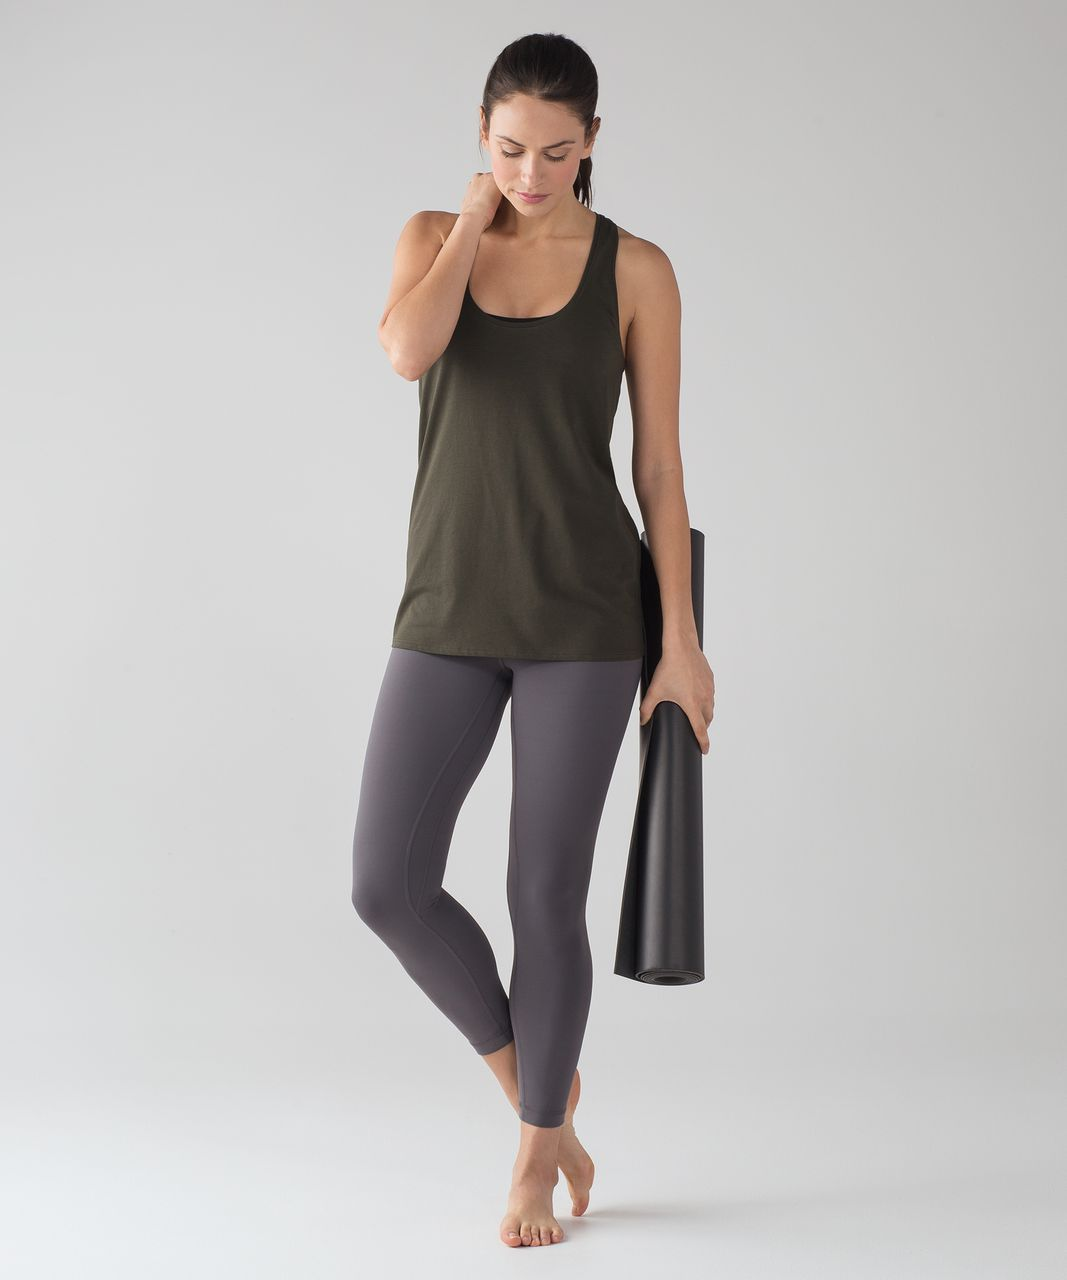 Lululemon Love Tank - Dark Olive